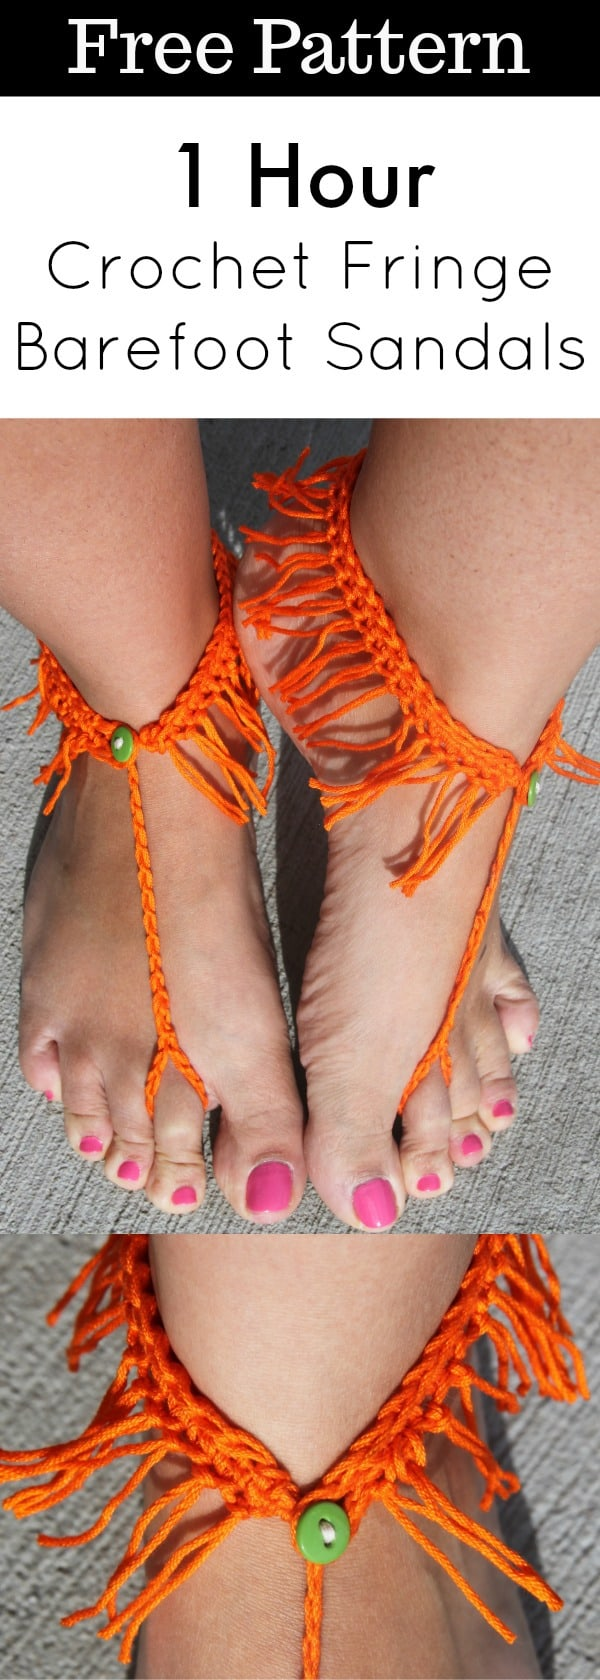 crochet fringe sandals free pattern